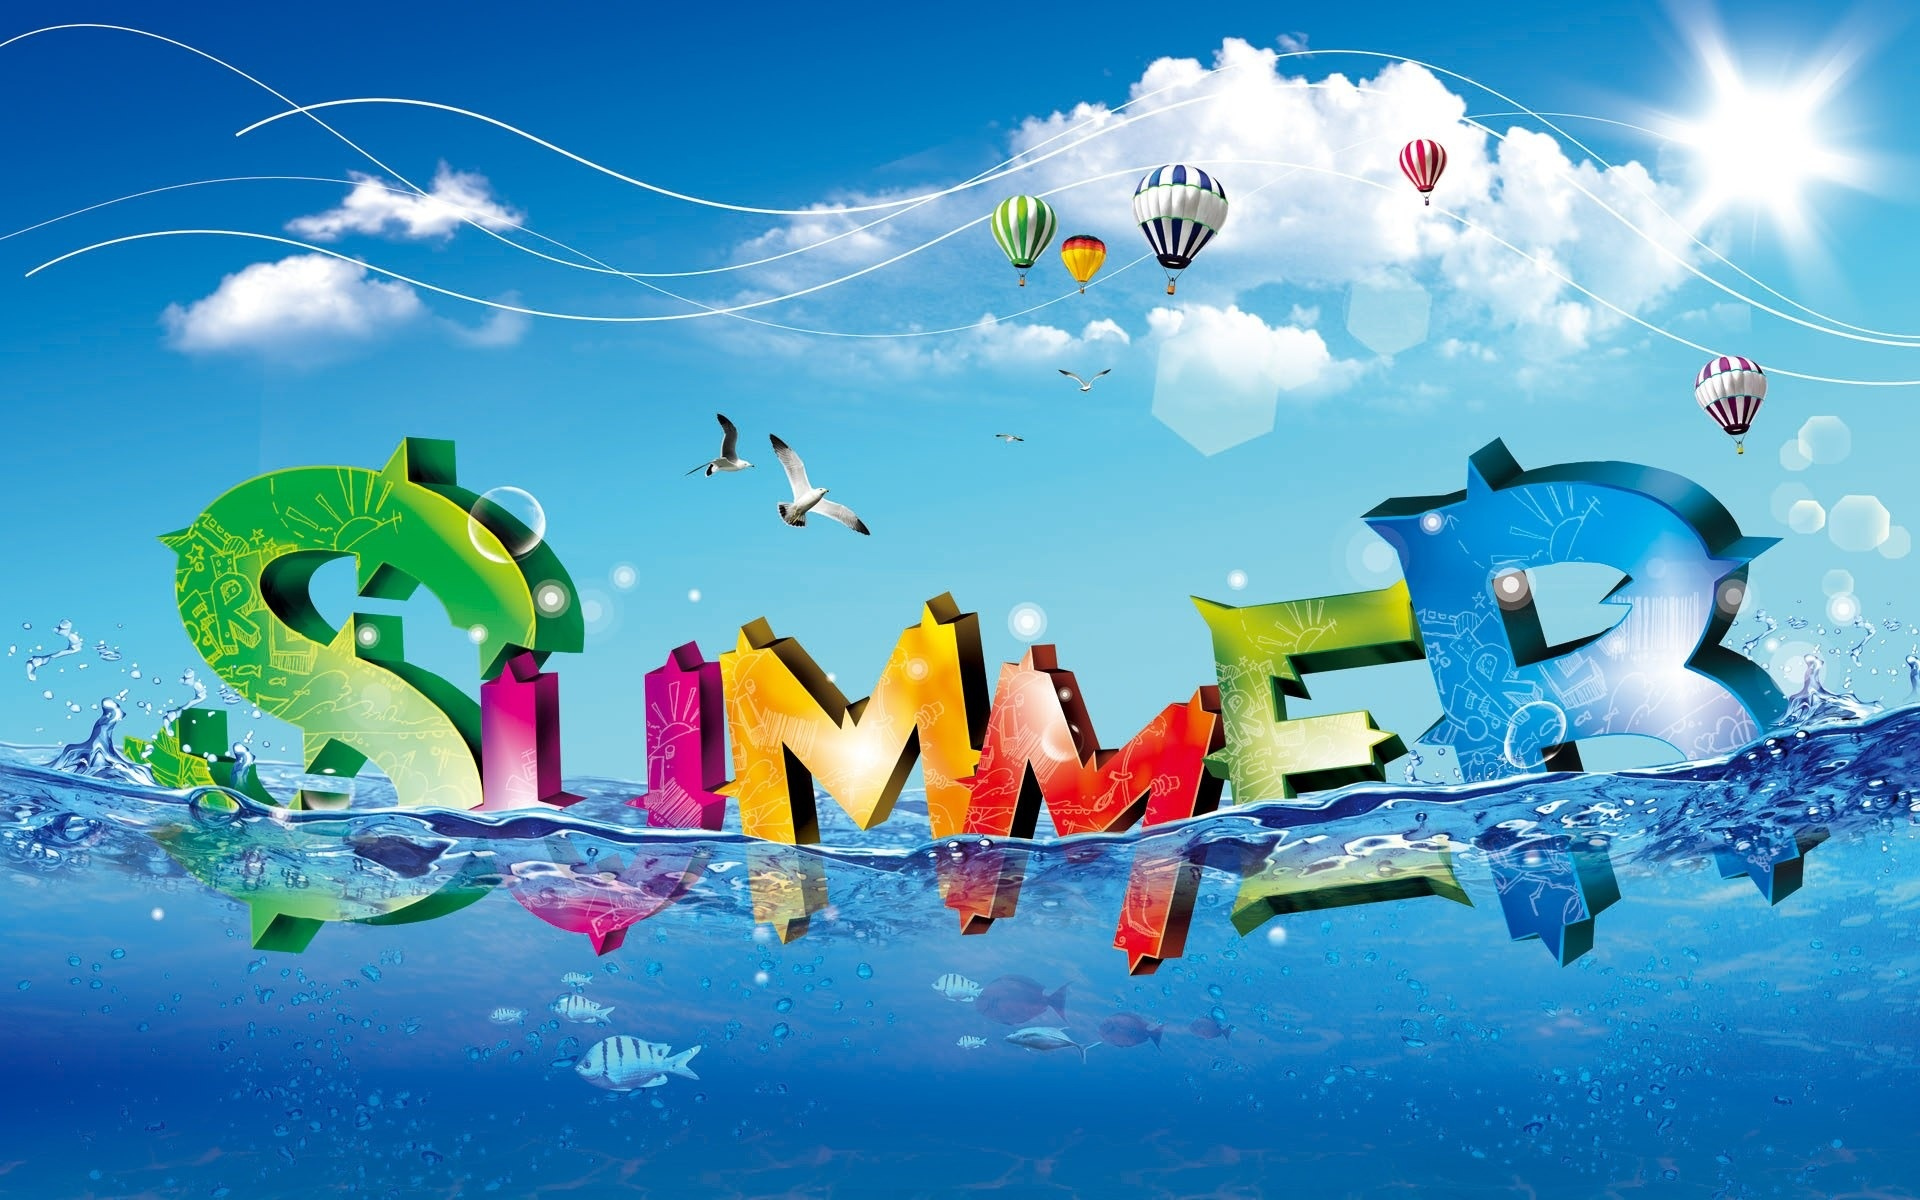 Download Cool Summer Wallpaper Cool Summer Wallpaper download 1920x1200